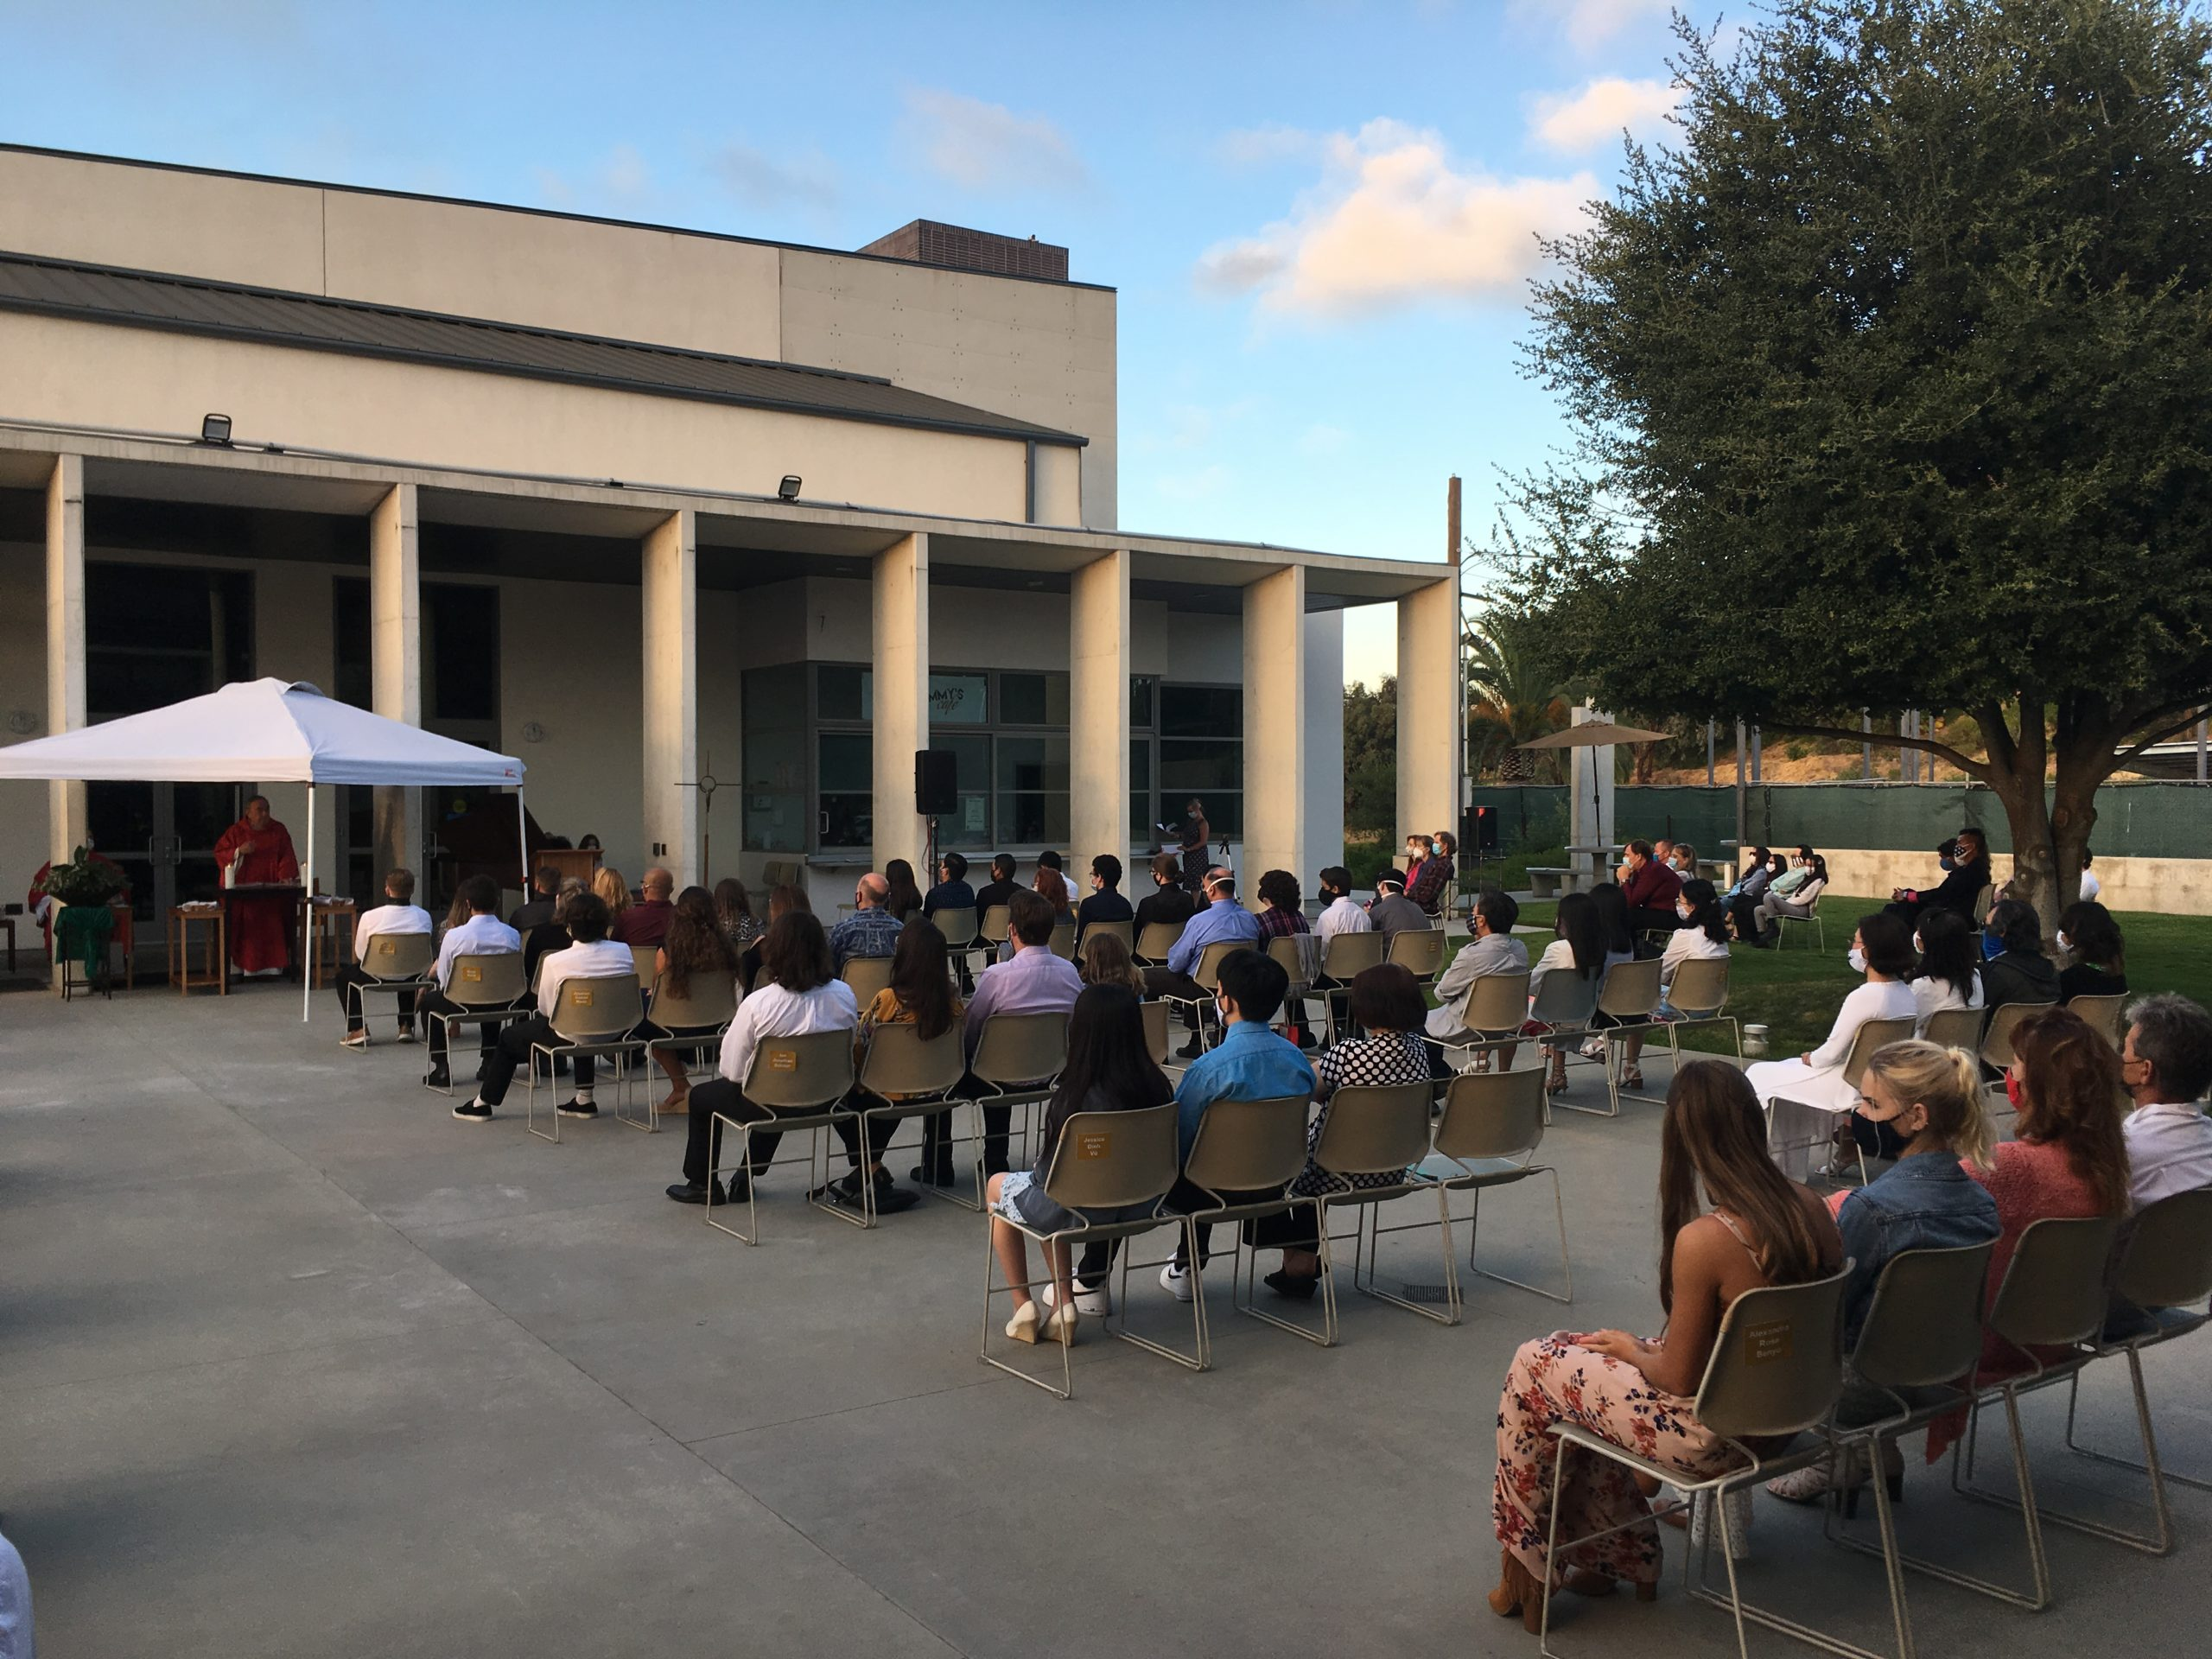 Daily Mass on the Plaza, Tuesdays, 8:15am